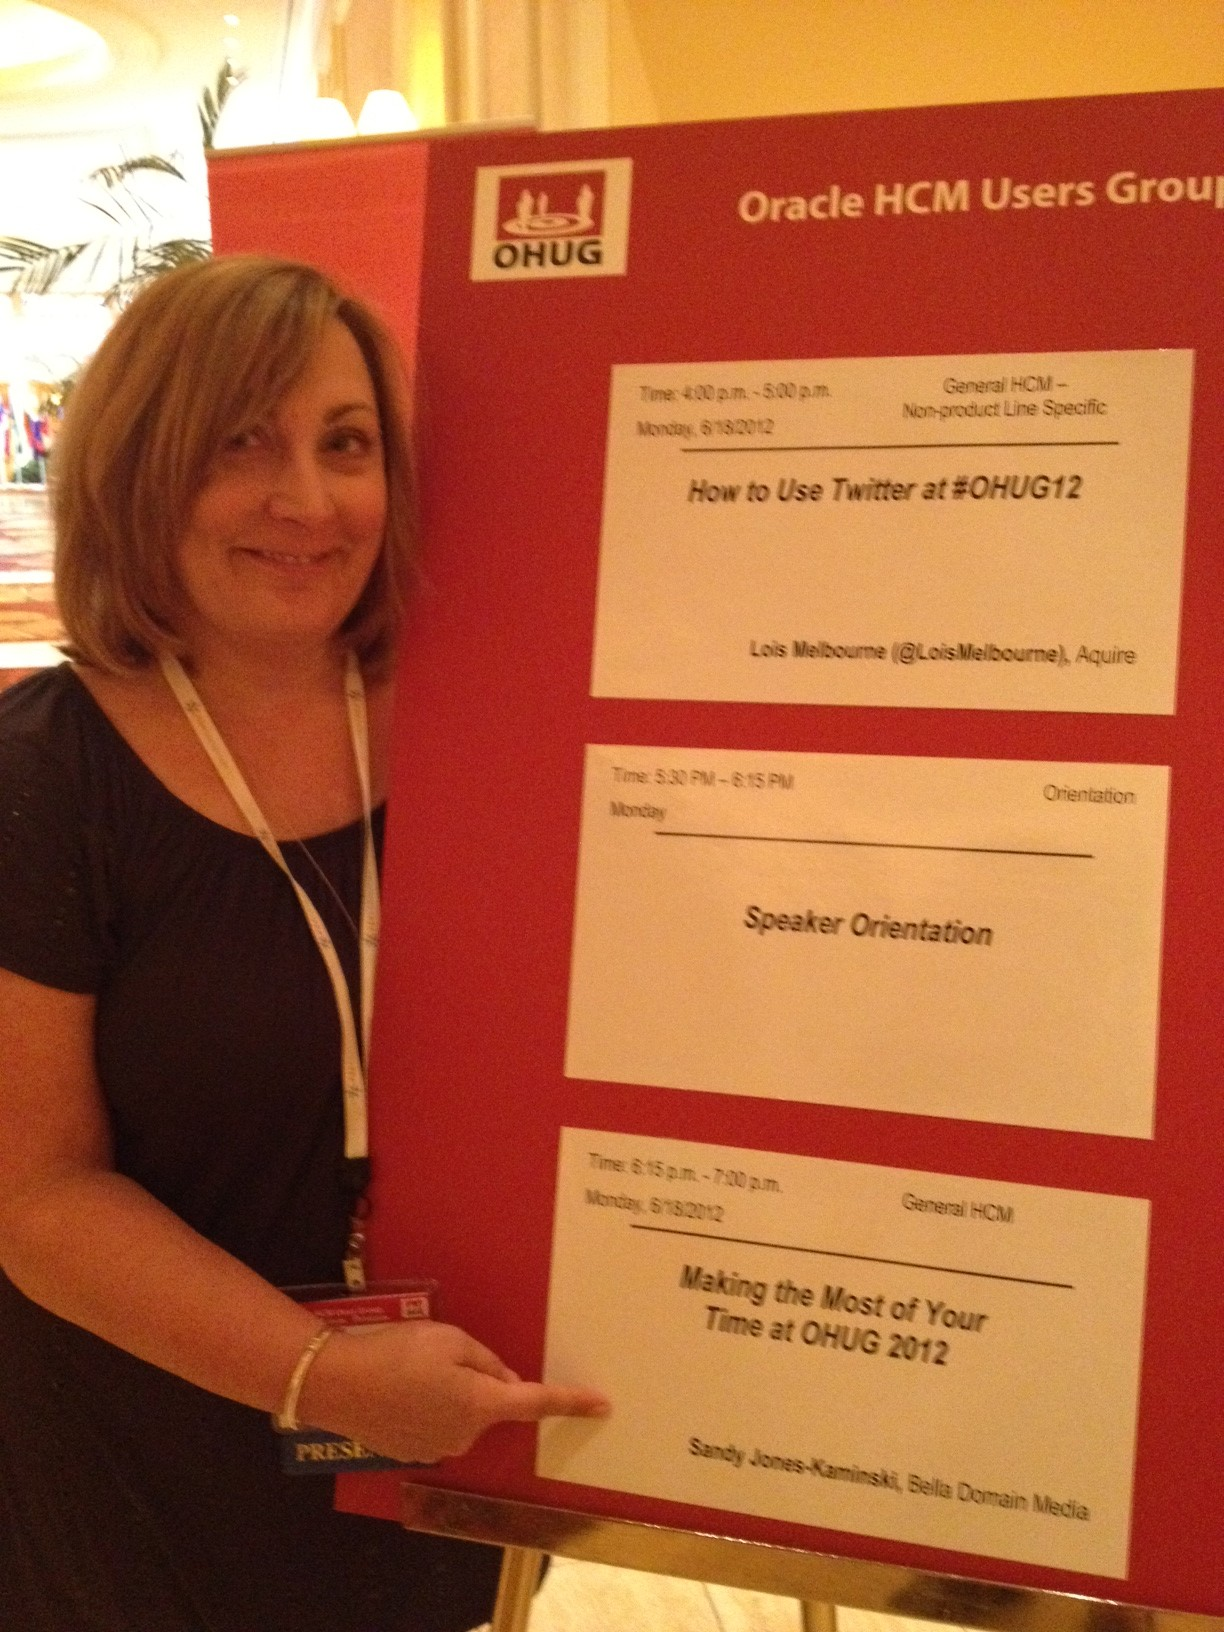 Sandy Jones-Kaminski at OHUG 2012 (session sign)